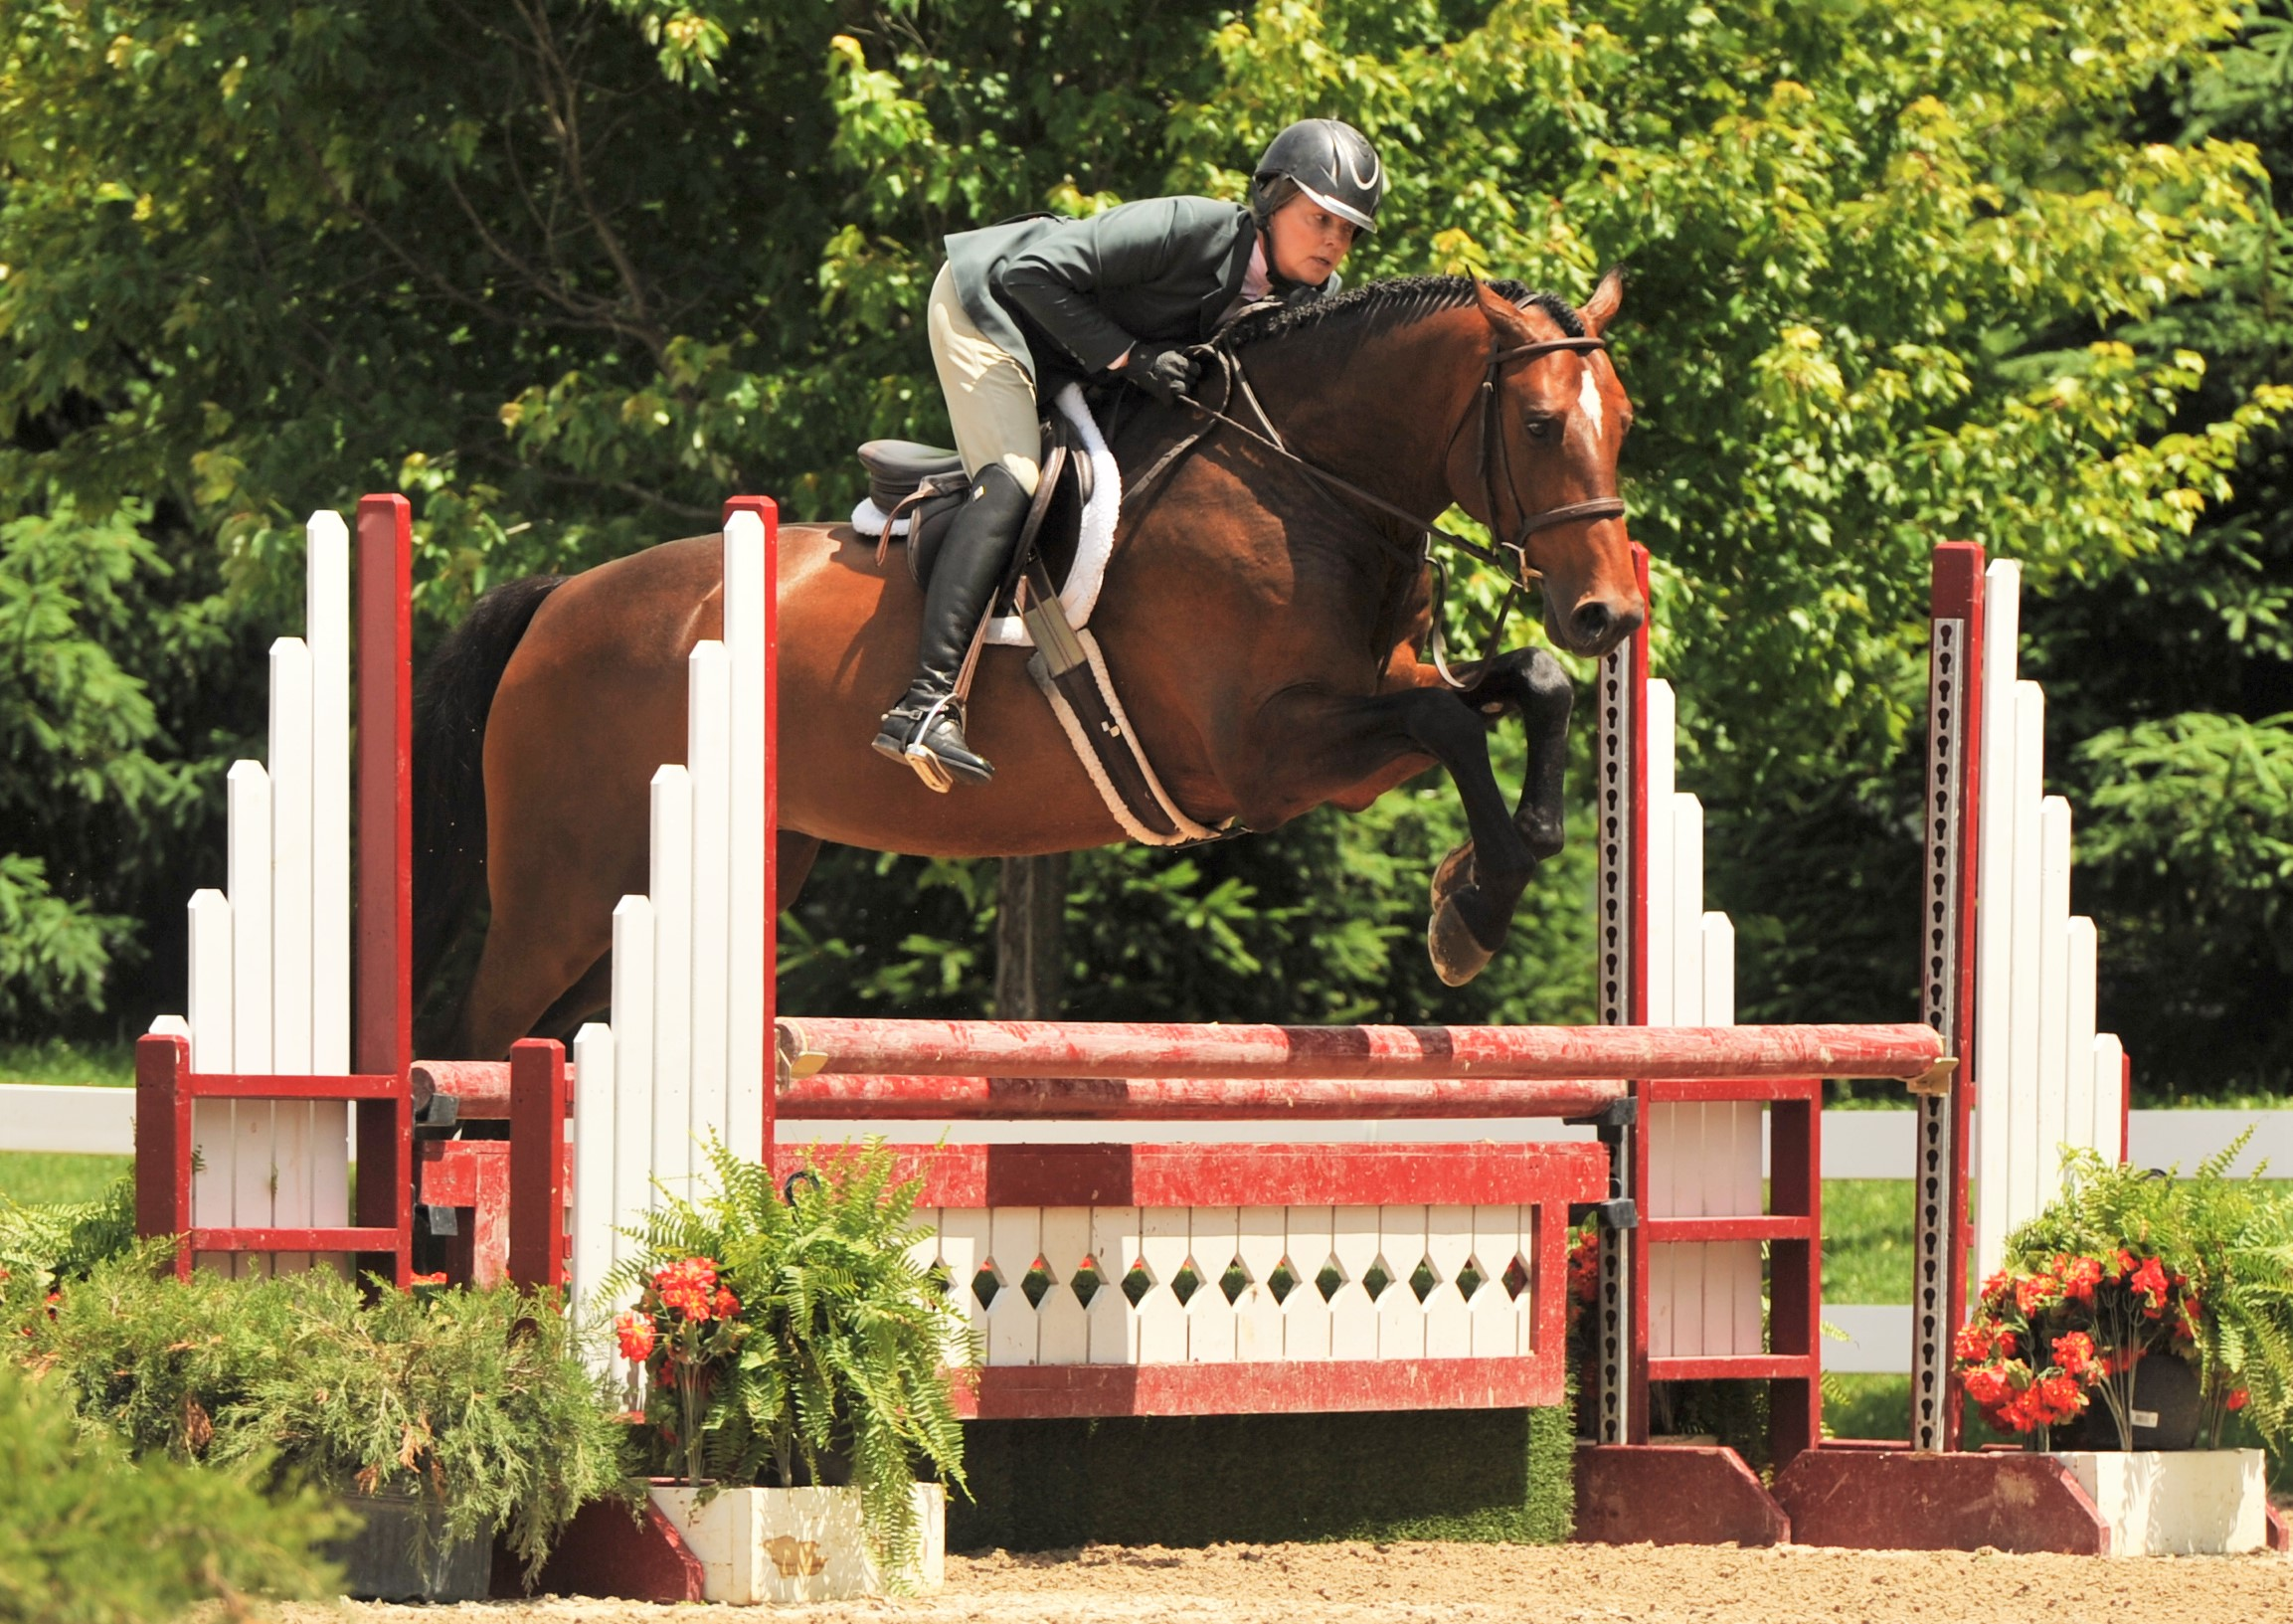 MTM Outbid and Tracy Fenney - Photo by Andrew Ryback Photography    $1000 Pre Green Hunter Challenge    MTM Outbid, owned by MTM Farm and ridden by Tracy Fenney, snagged the top title in the $1000 Pre Green Hunter Challenge.